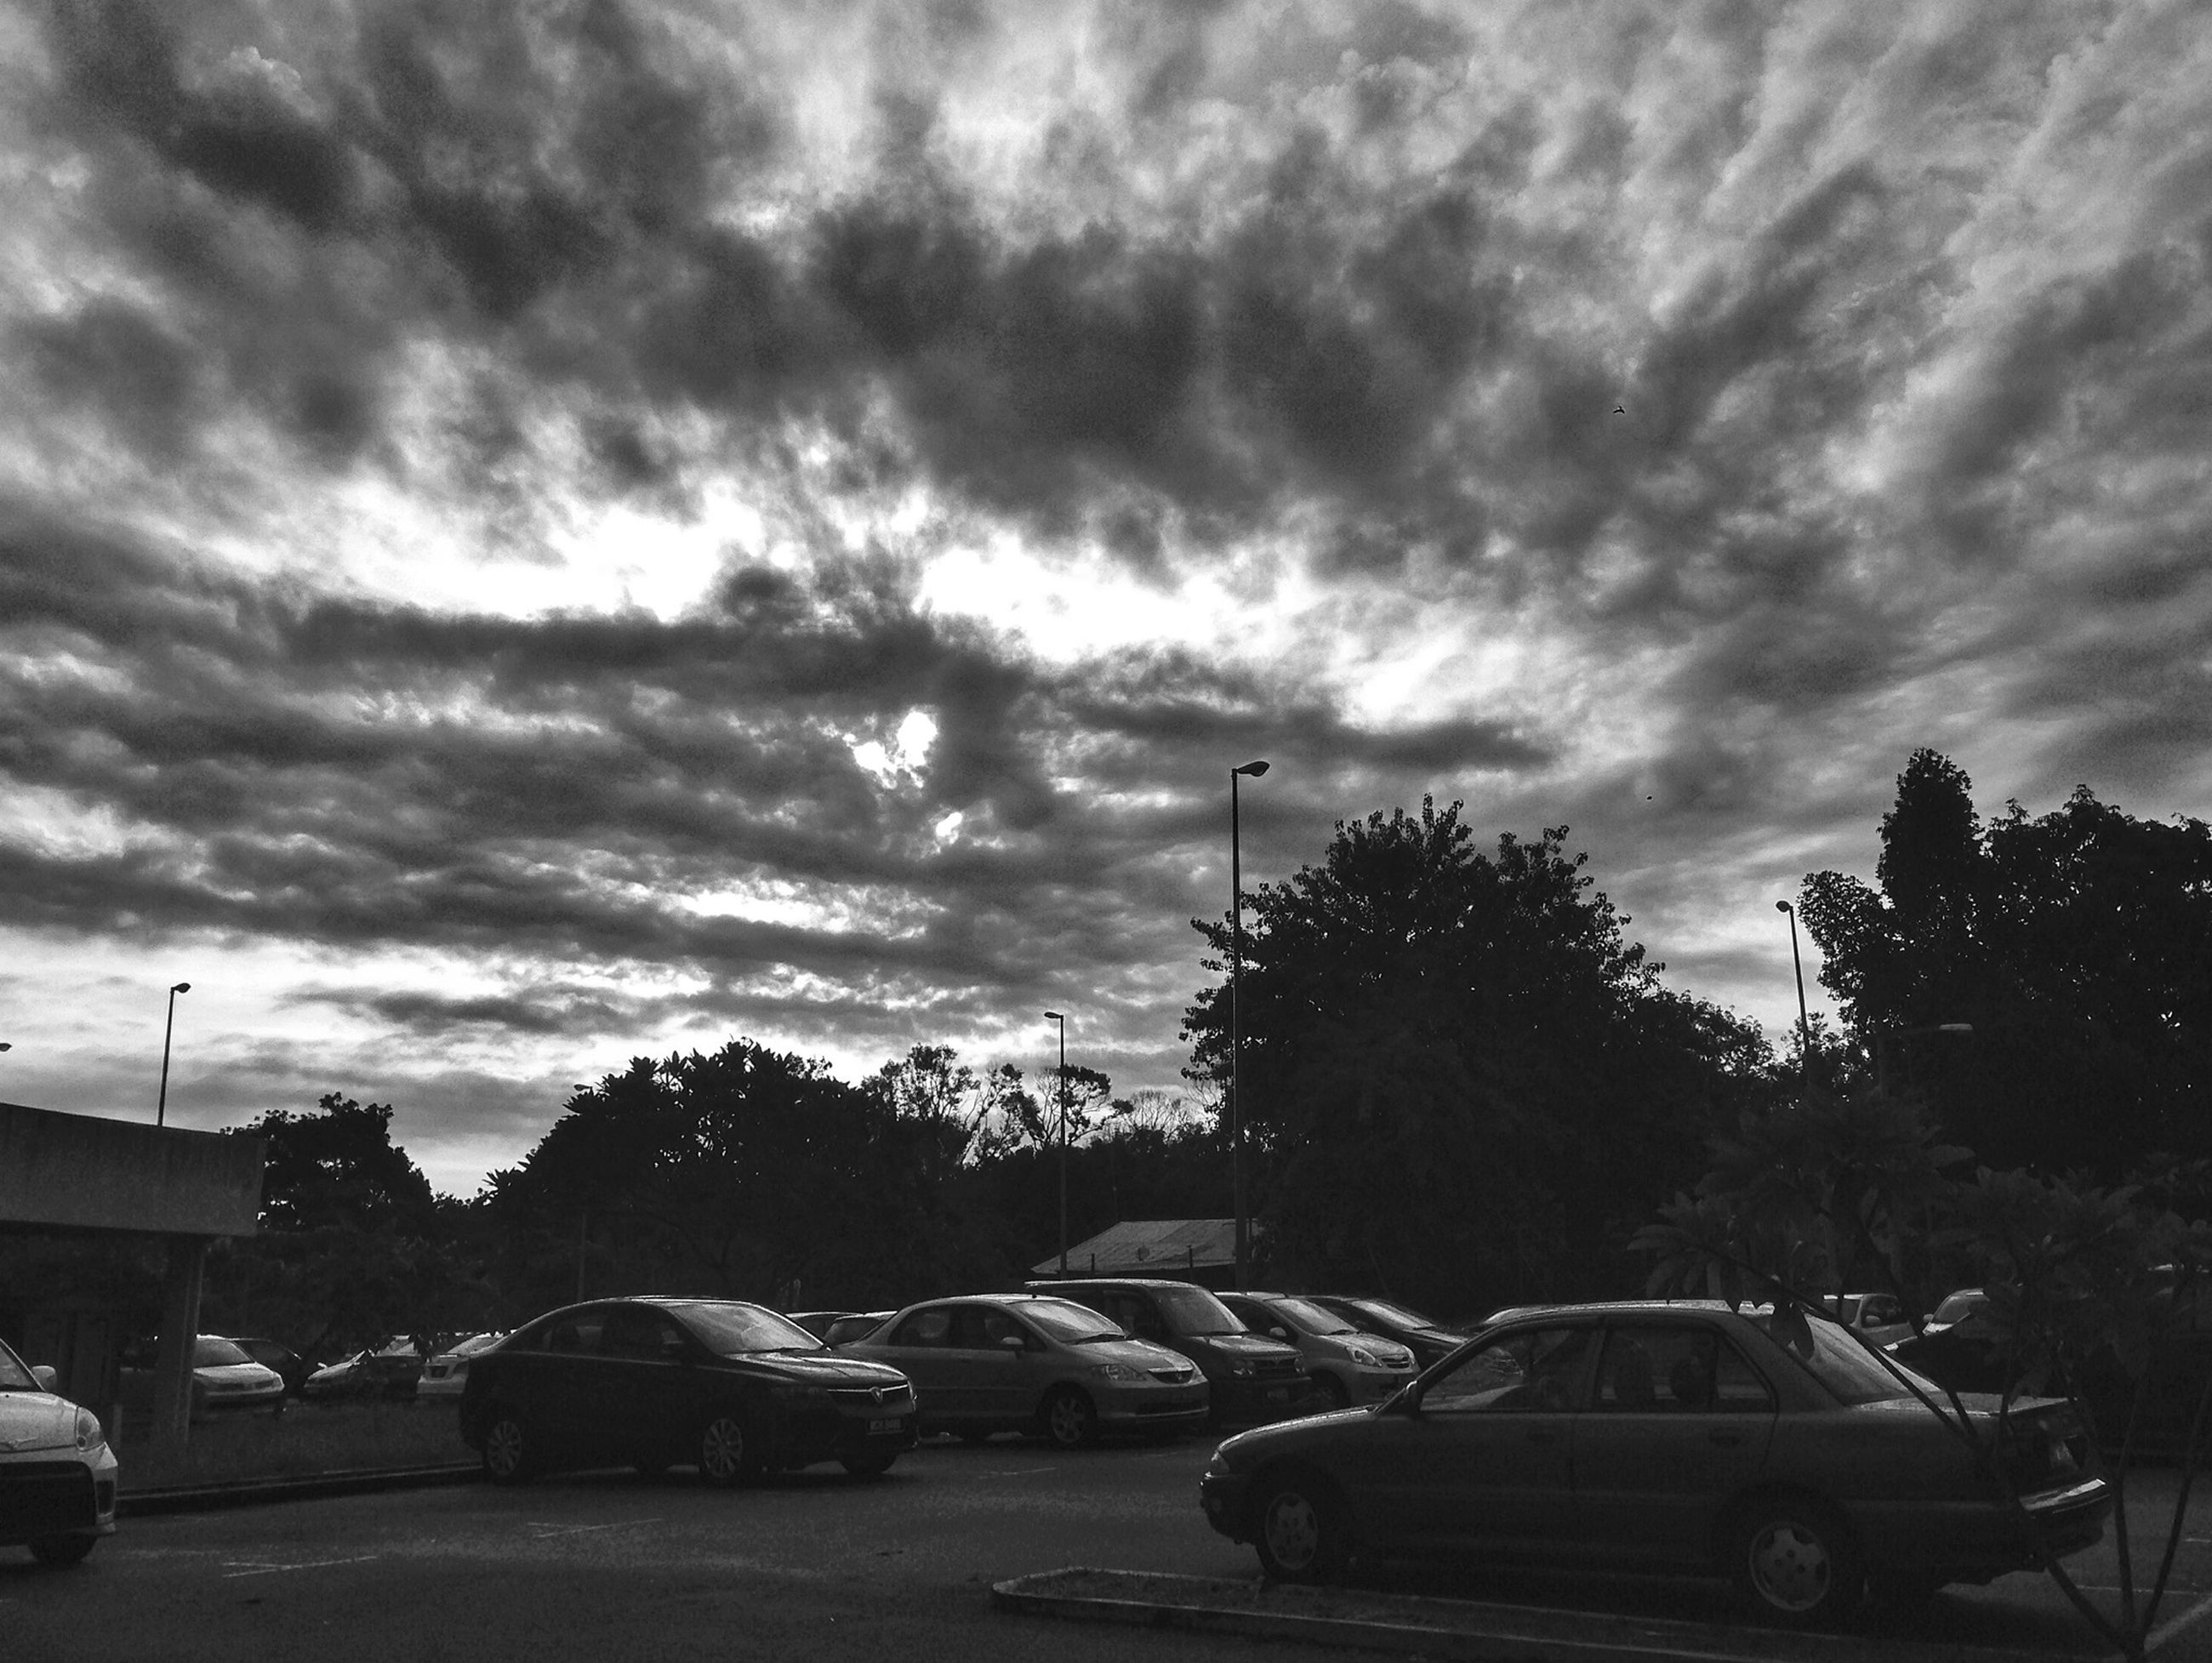 transportation, sky, mode of transport, land vehicle, car, cloud - sky, tree, cloudy, stationary, cloud, parking, parked, weather, overcast, outdoors, parking lot, road, nature, street, travel